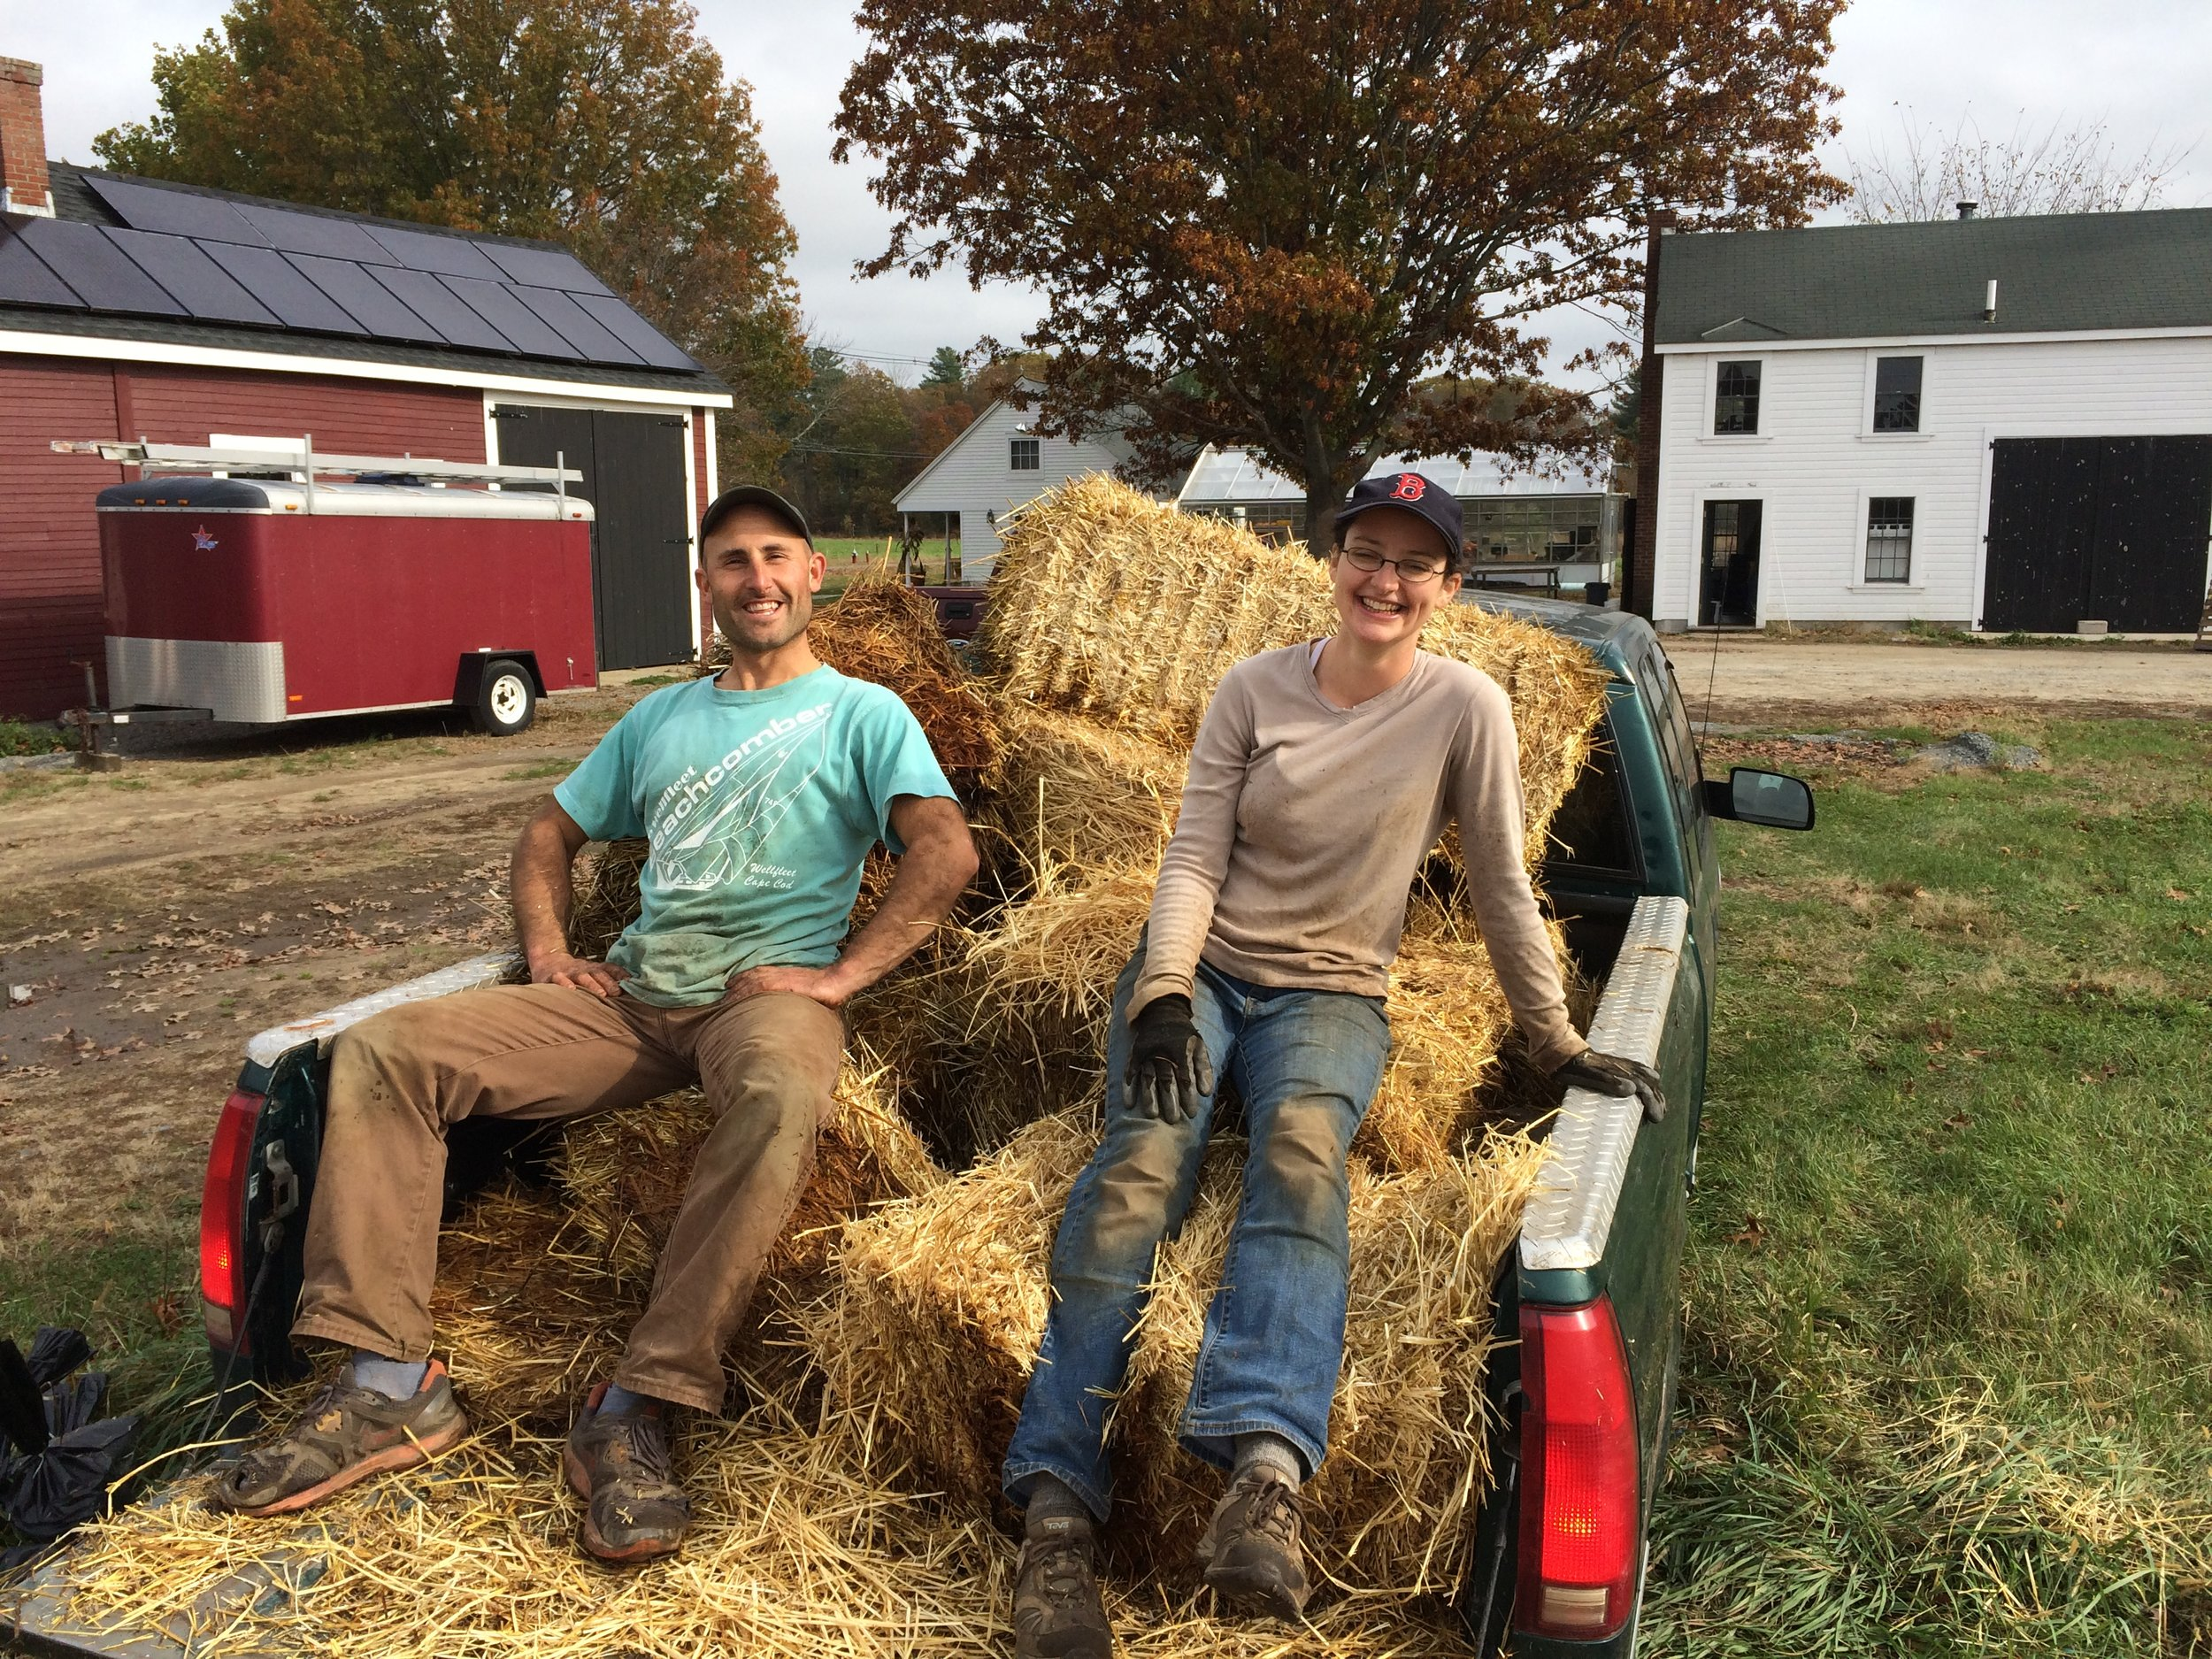 Shaun and Rebecca catching a ride out with the straw to the garlic field. We plant garlic at the end of October and then mulch it with straw to protect it over the winter and suppress weeds in the spring and summer.